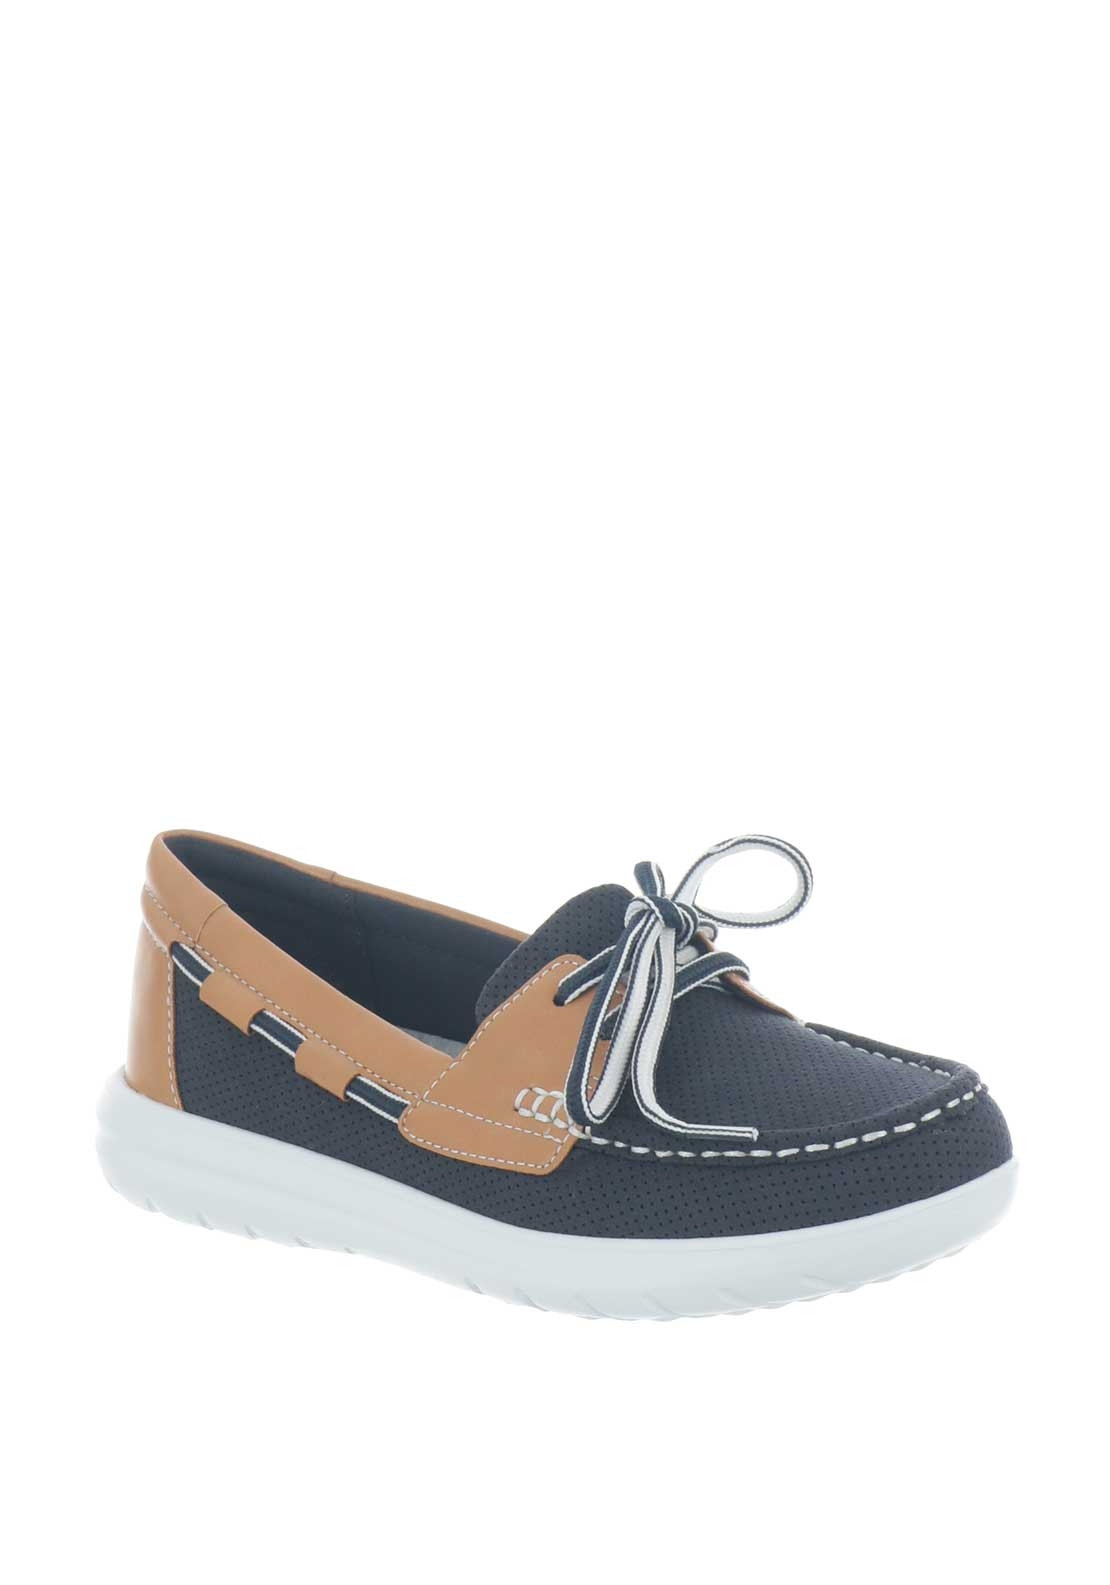 clarks ladies navy loafers